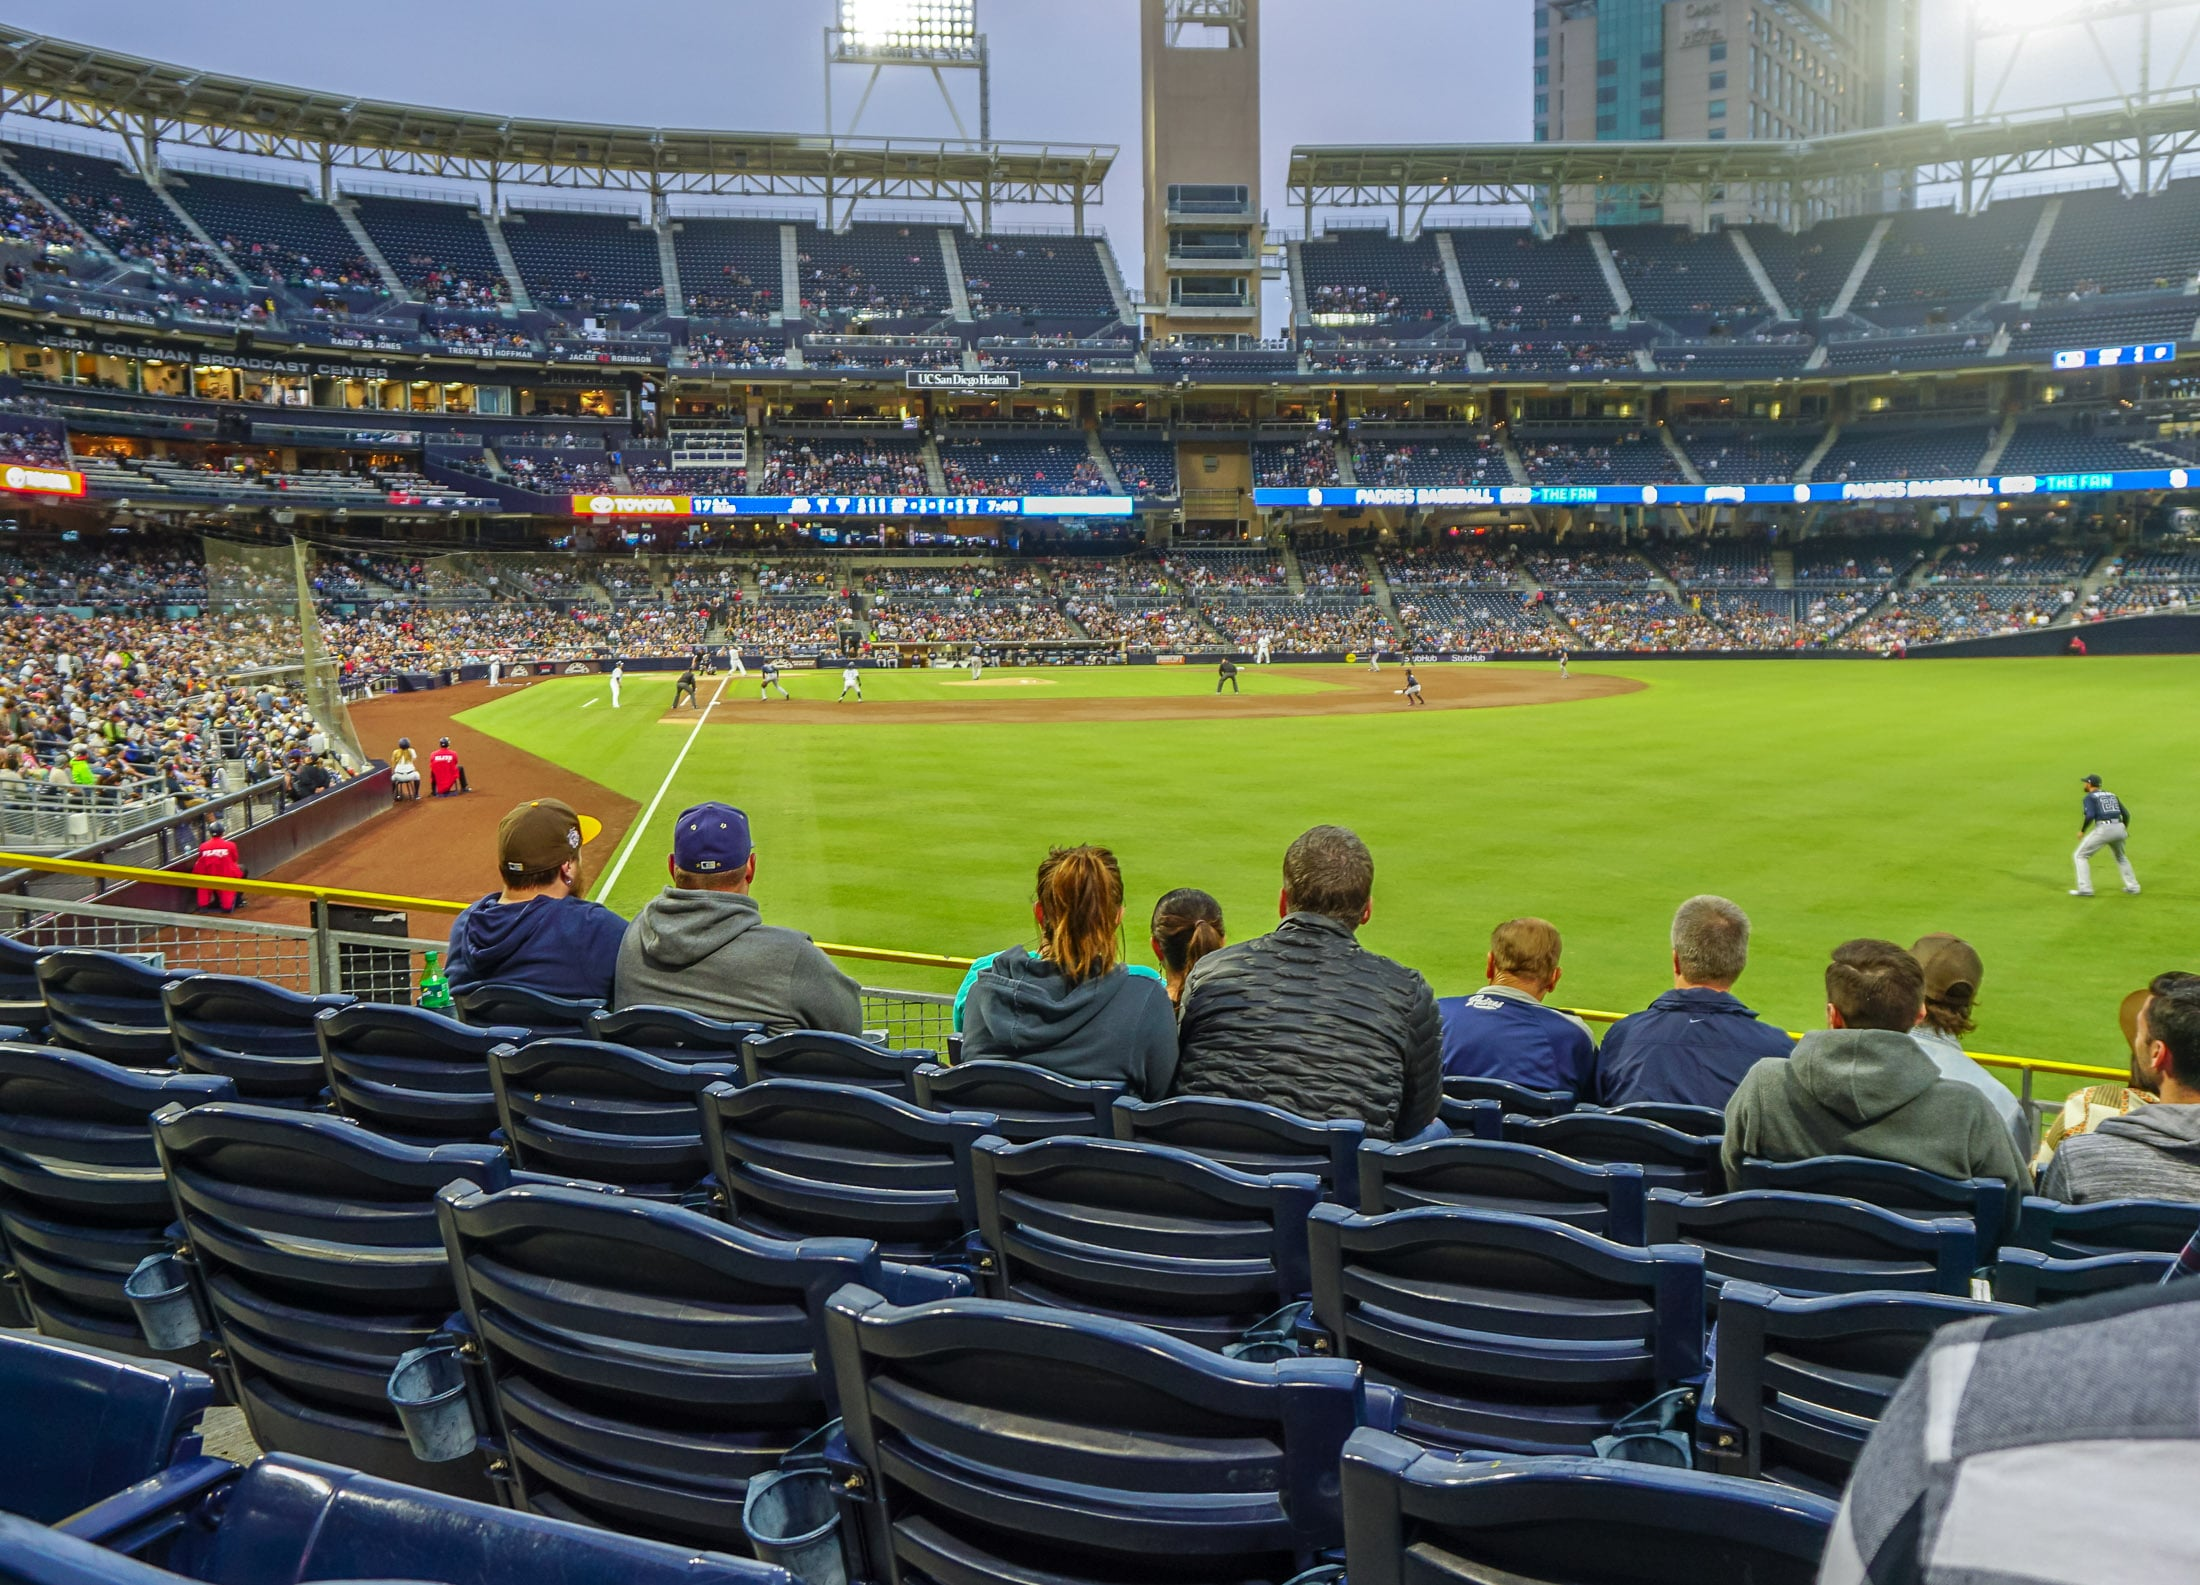 Petco Park seating advice for Padres games